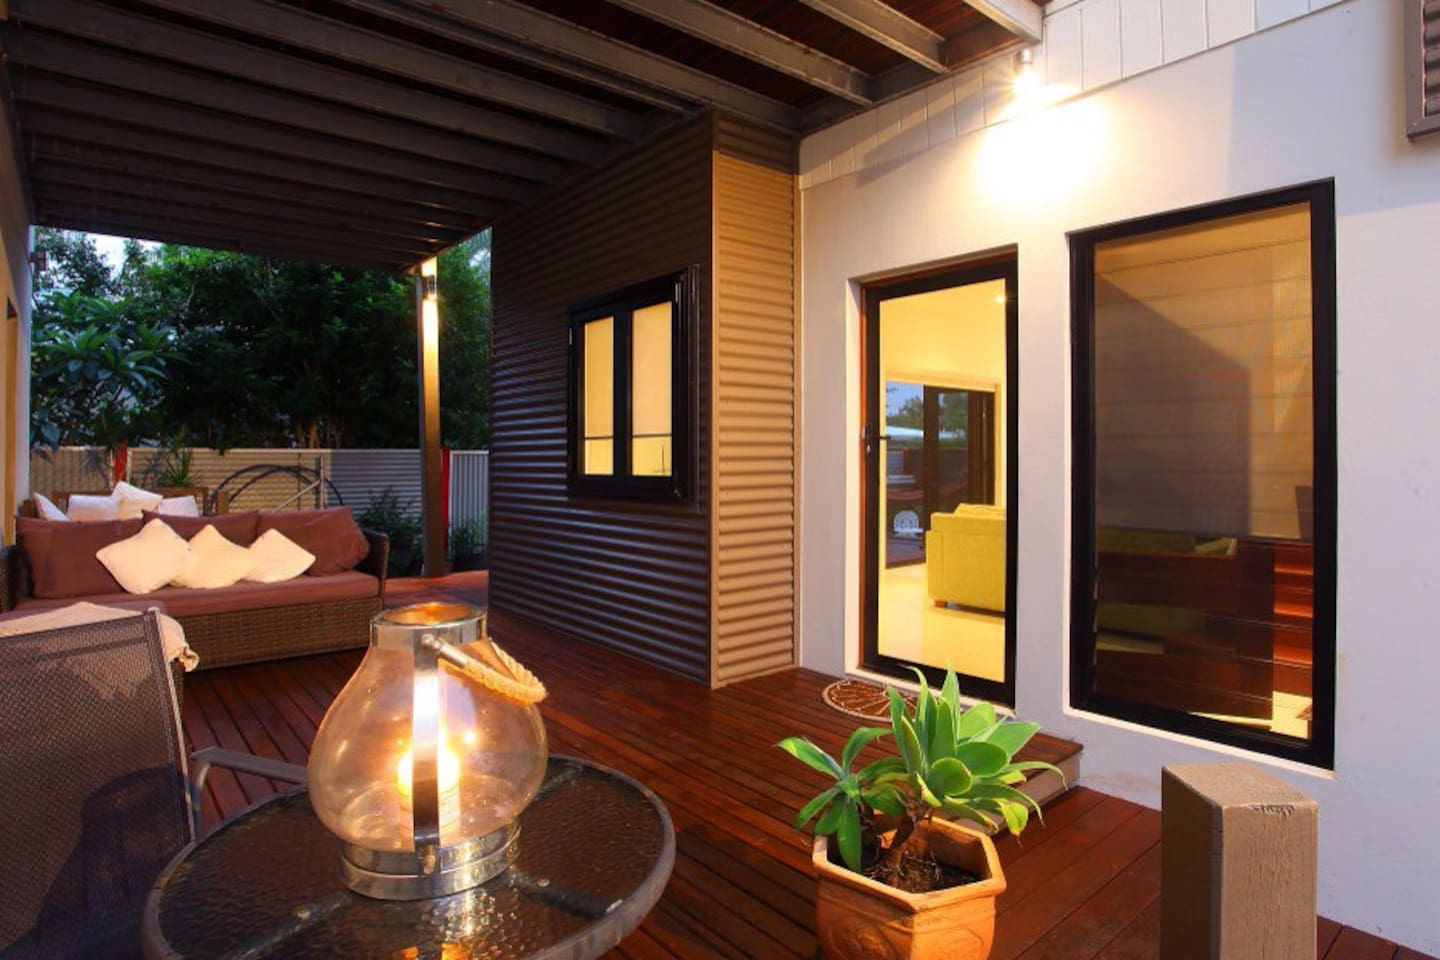 Two lovely outdoor areas for you to relax